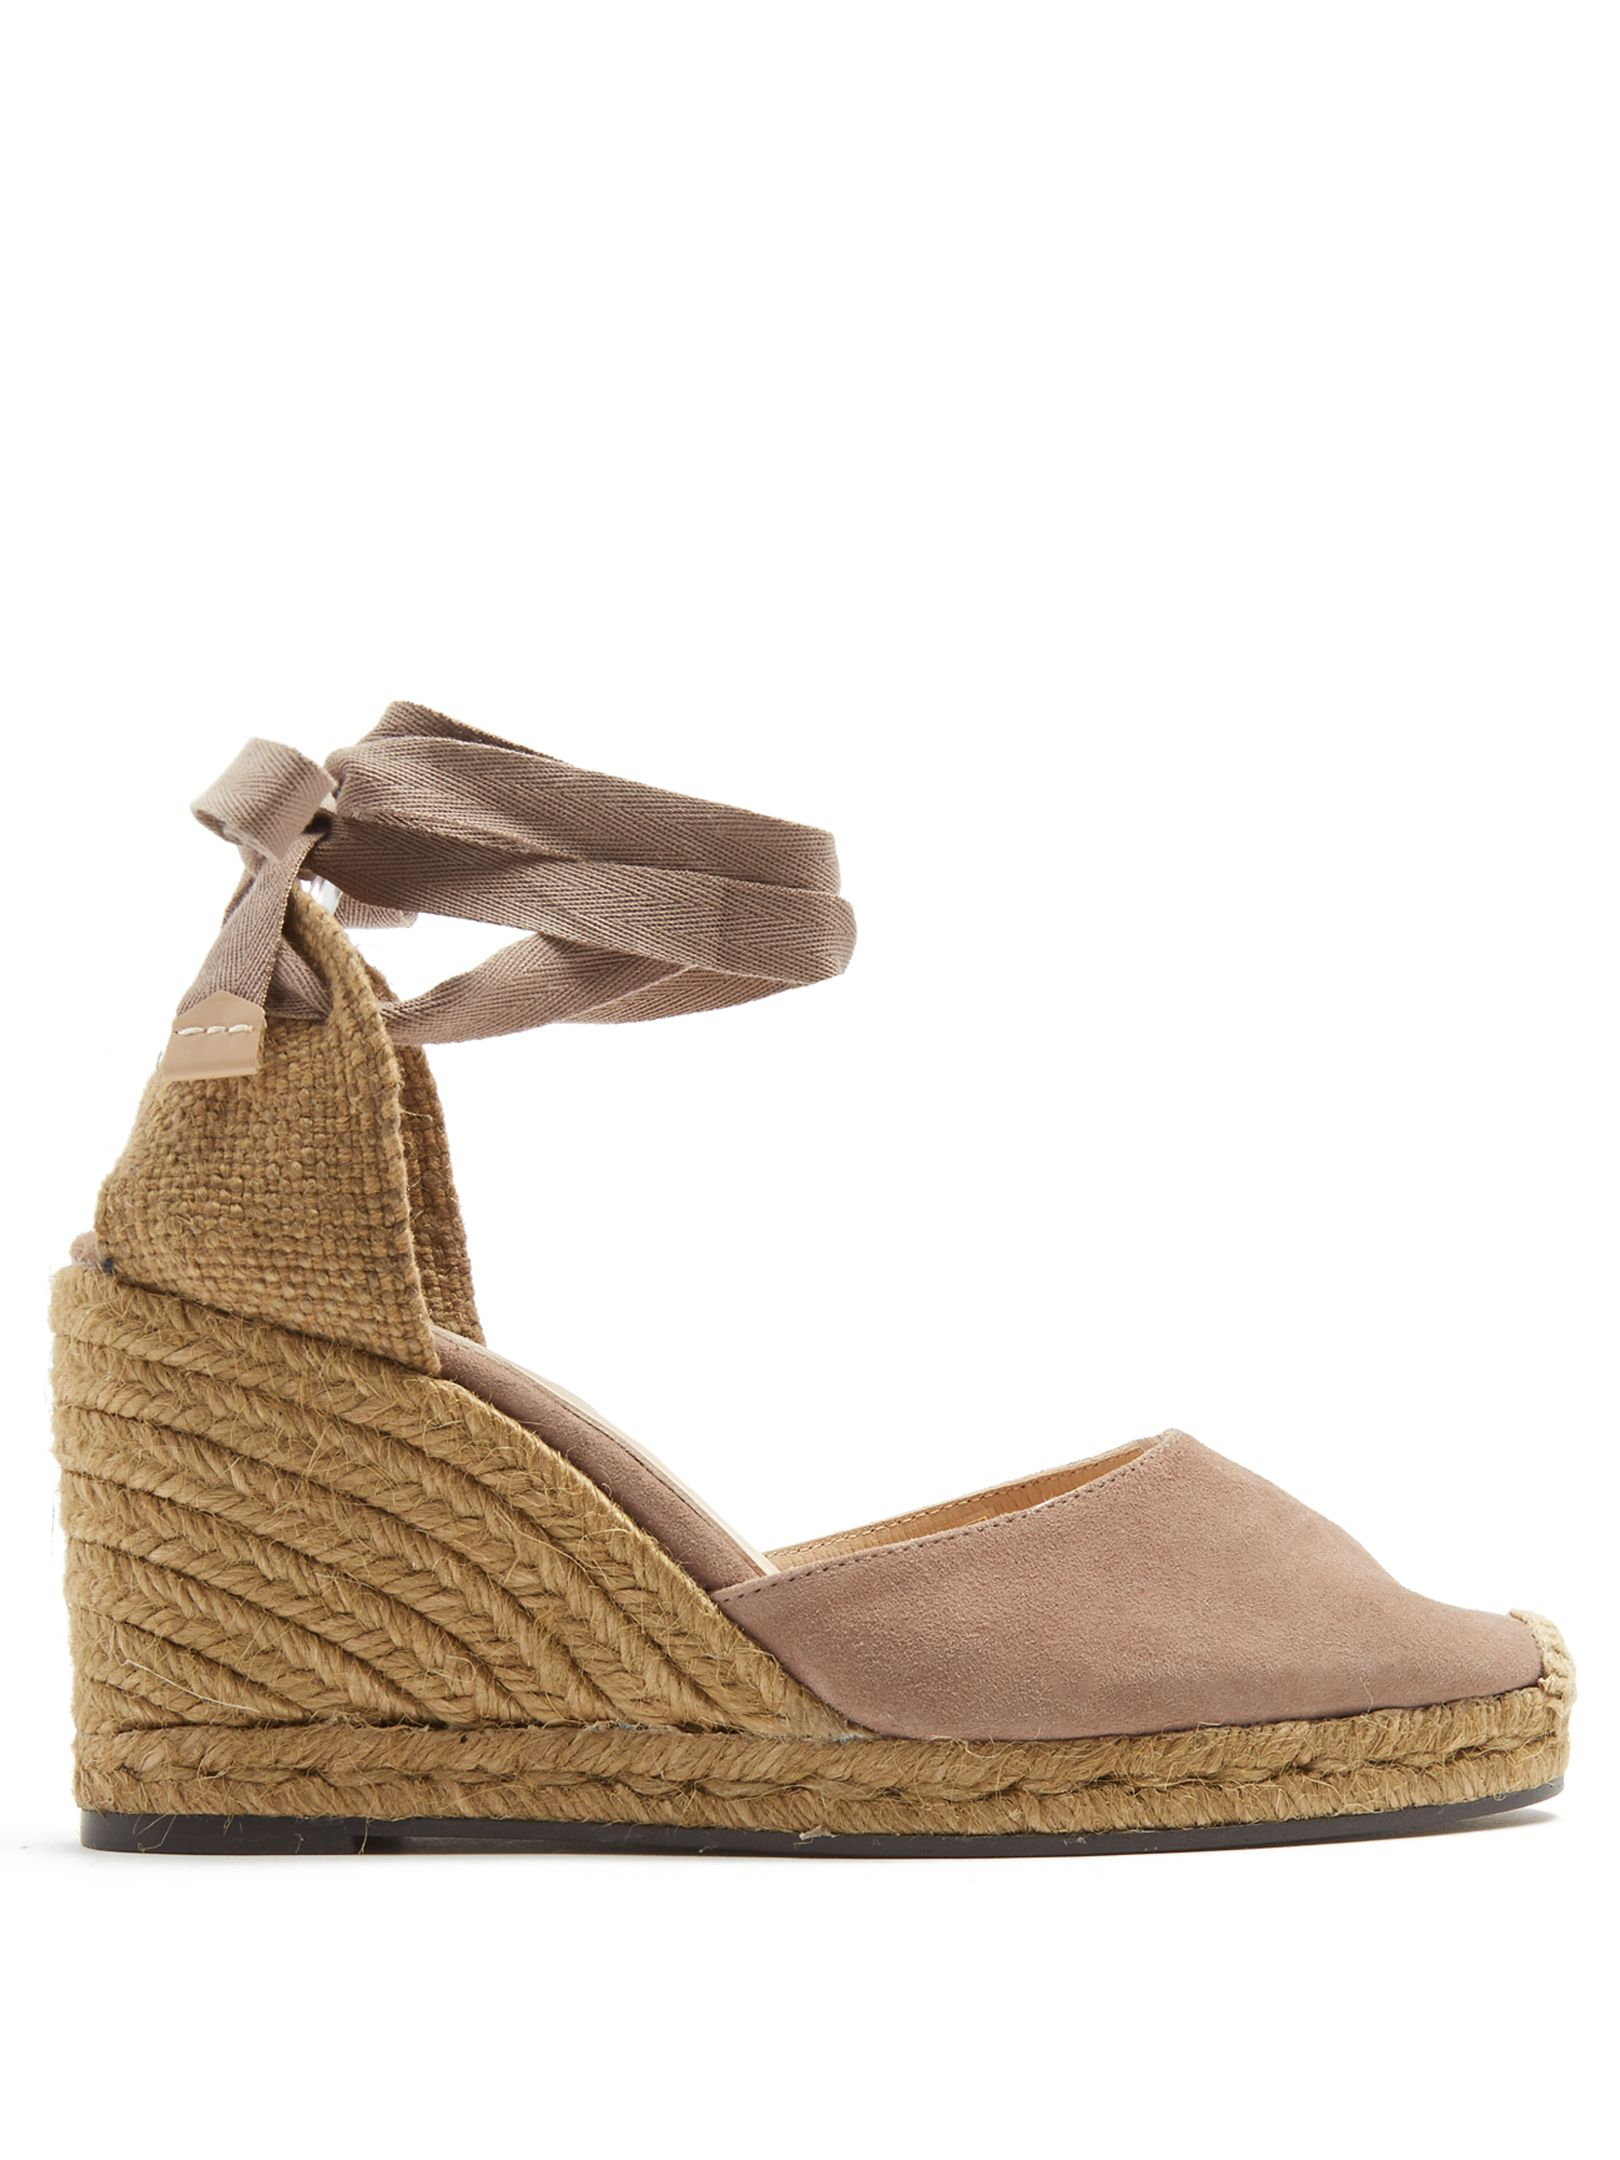 Click here to buy Castañer Carina suede wedge espadrilles at  MATCHESFASHION.COM 4f3dbfb0145